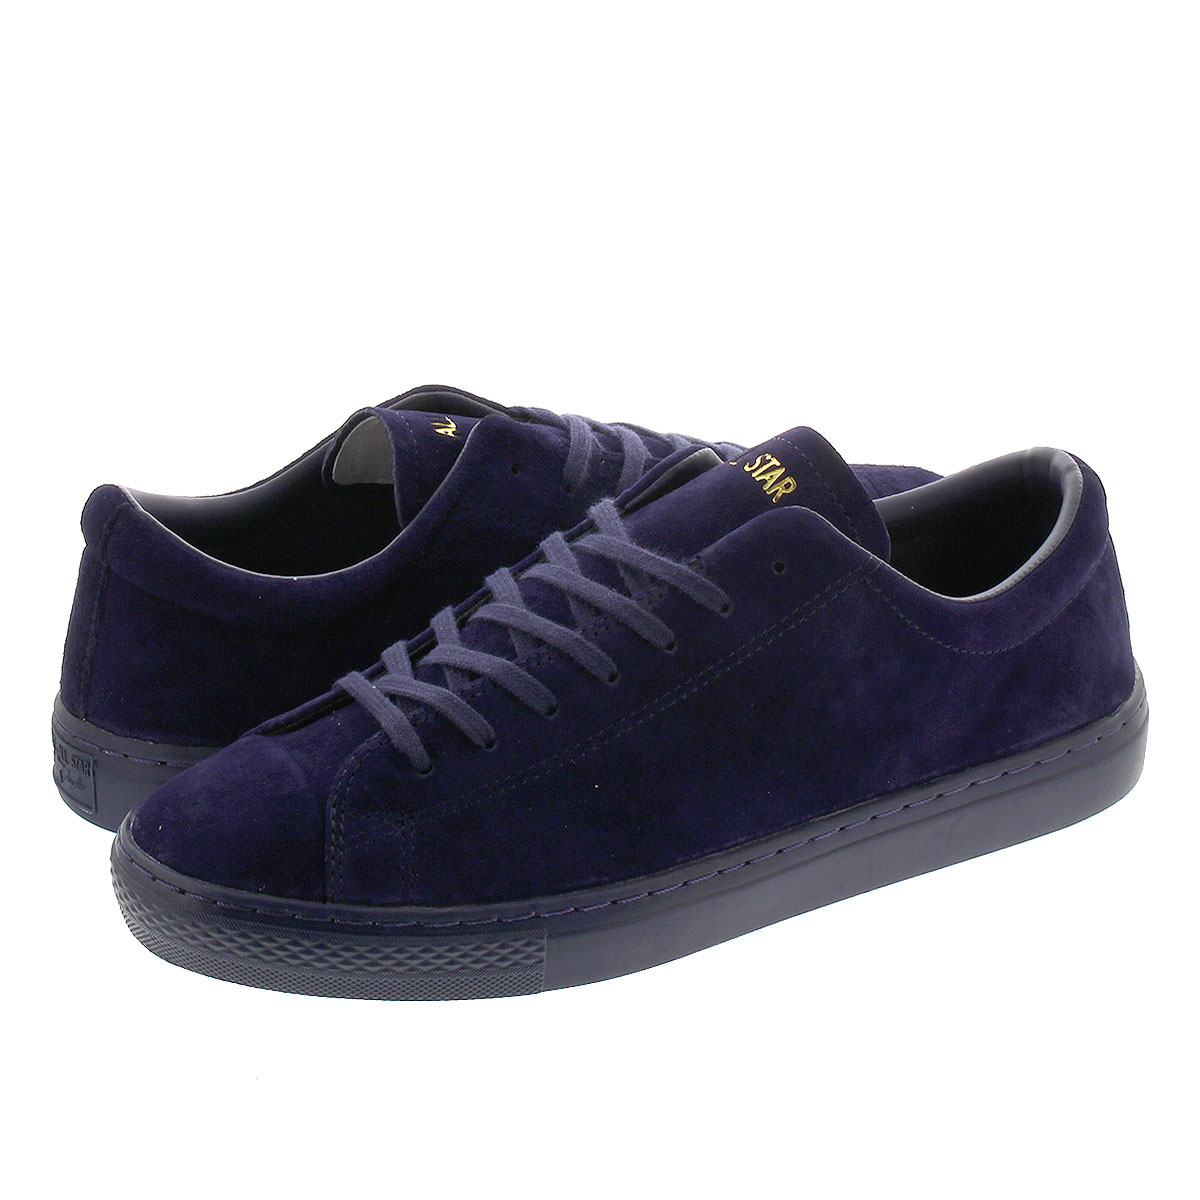 CONVERSE ALL STAR COUPE SUEDE WV OX コンバース オールスター クップ スエード WV OX NAVY 31302811